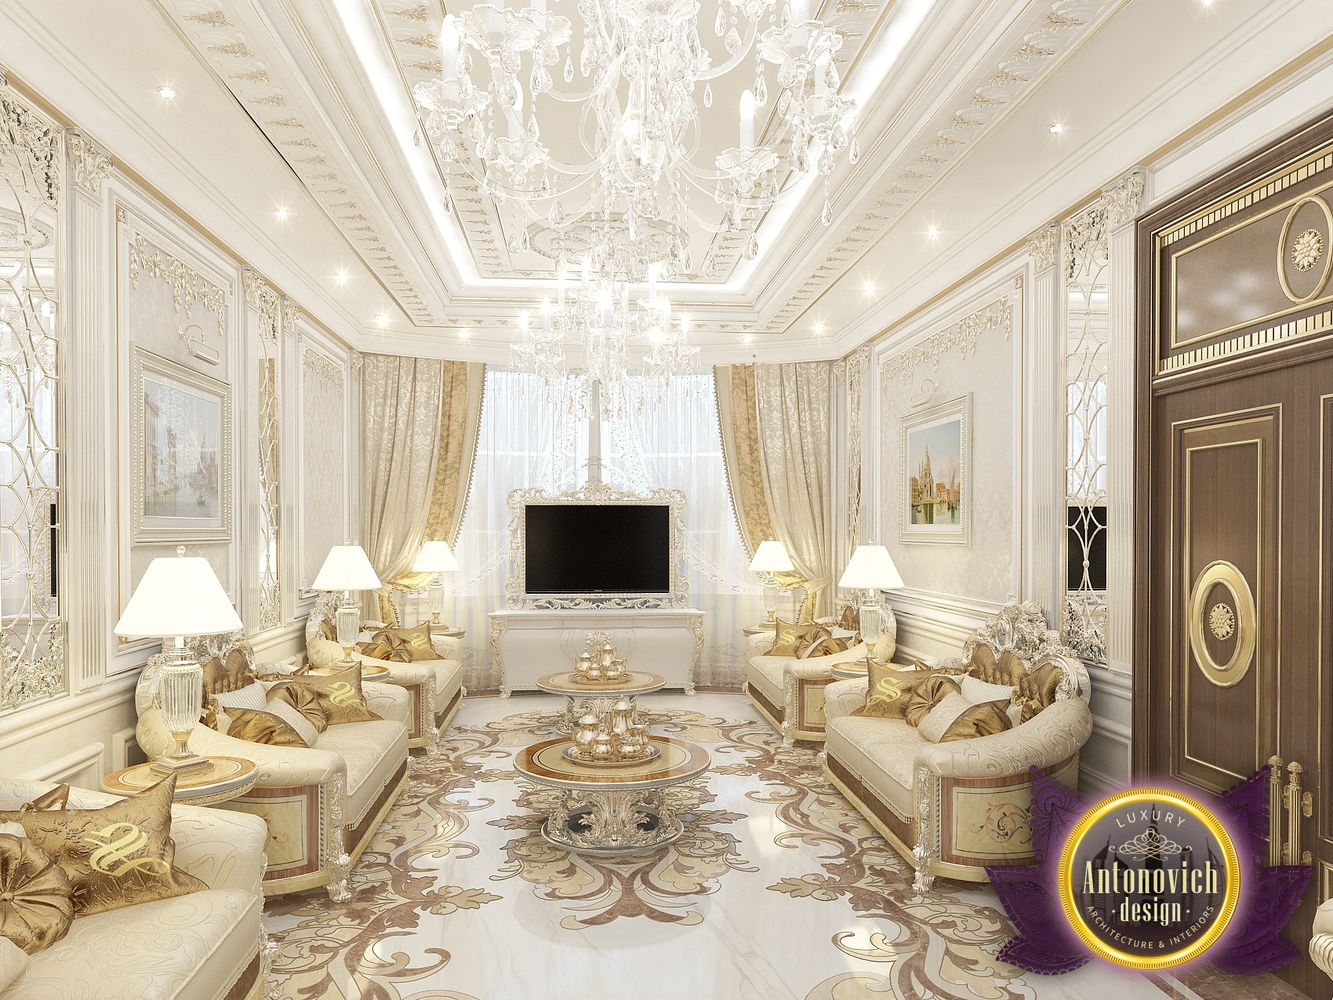 Luxury antonovich design uae living room interior design for Deco de interiores